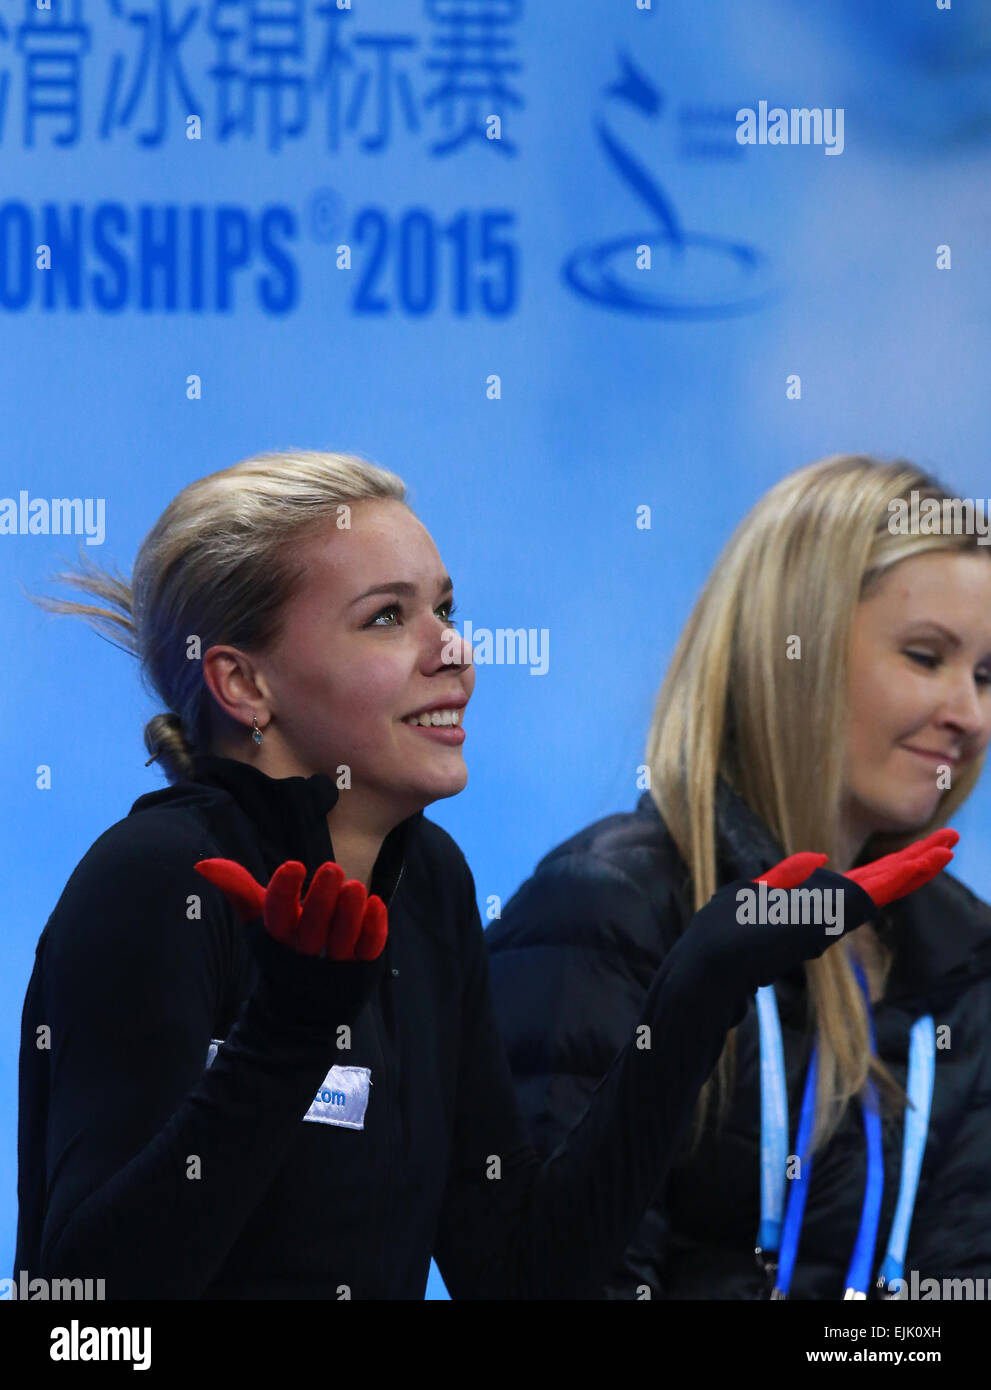 Shanghai, China. 28th Mar, 2015. Anna Pogorilaya of Russia (L) with her coach Anna Tsareva waiting for the scores in the kiss and cry after the ladies free skating event at the 2015 ISU World Figure Skating Championships at the Shanghai Oriental Sports Centre. Credit:  Vladimir Smirnov/TASS/Alamy Live News